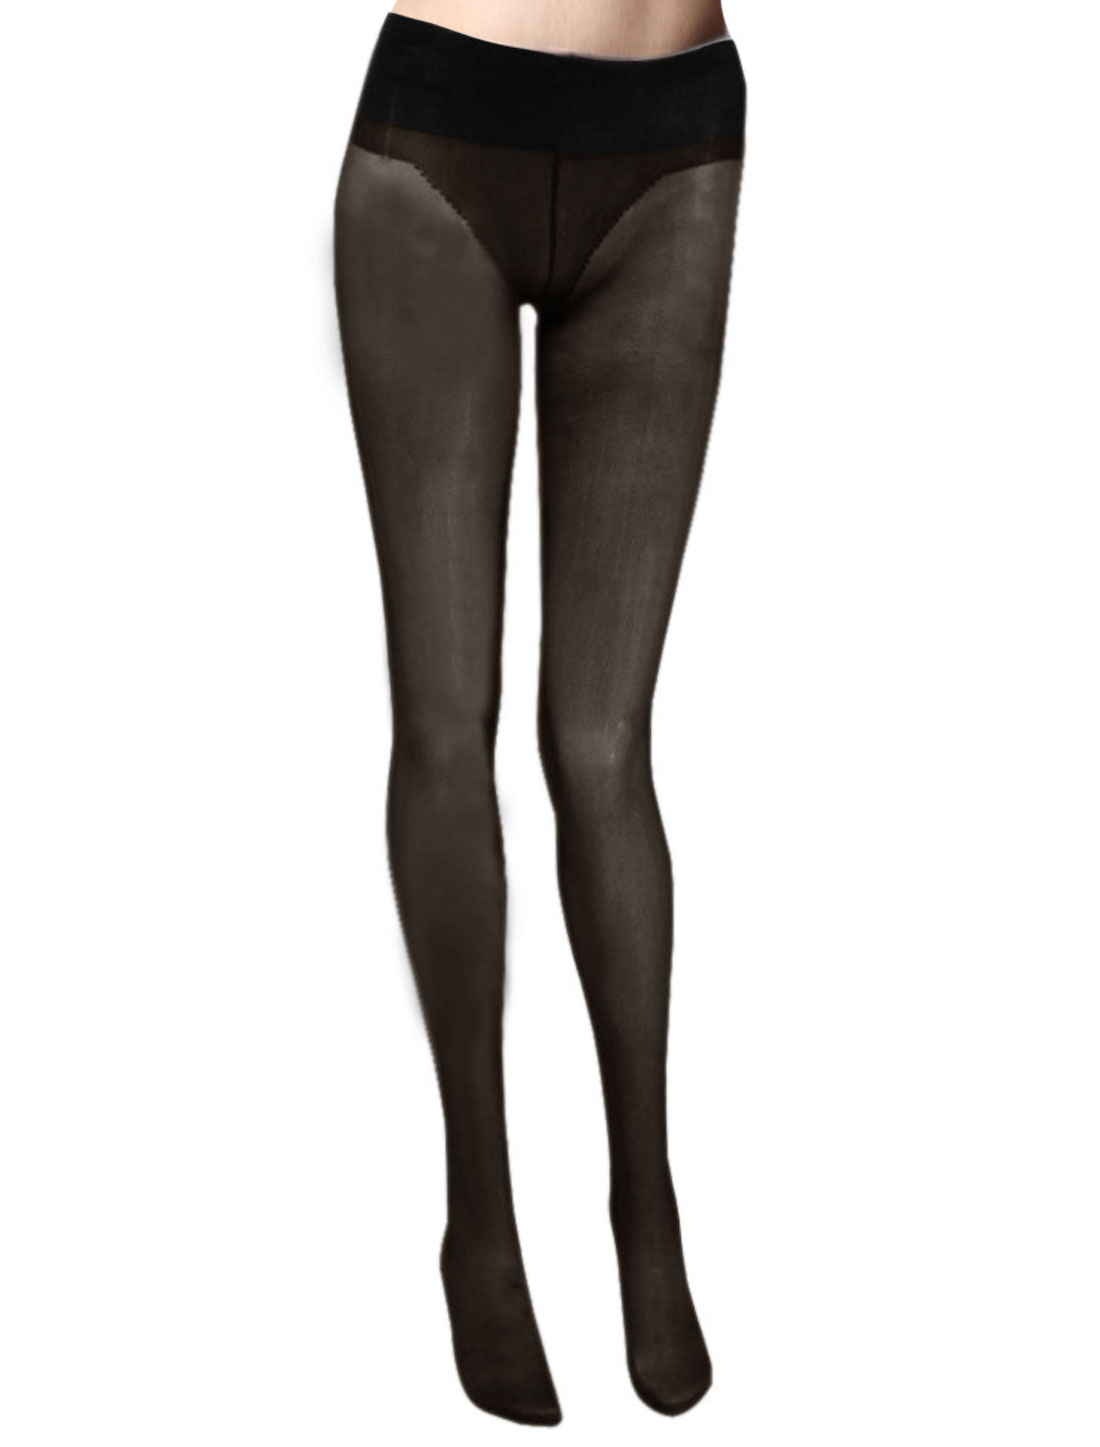 Women Black Elastic Waist Sheer Pantyhose Tights XS